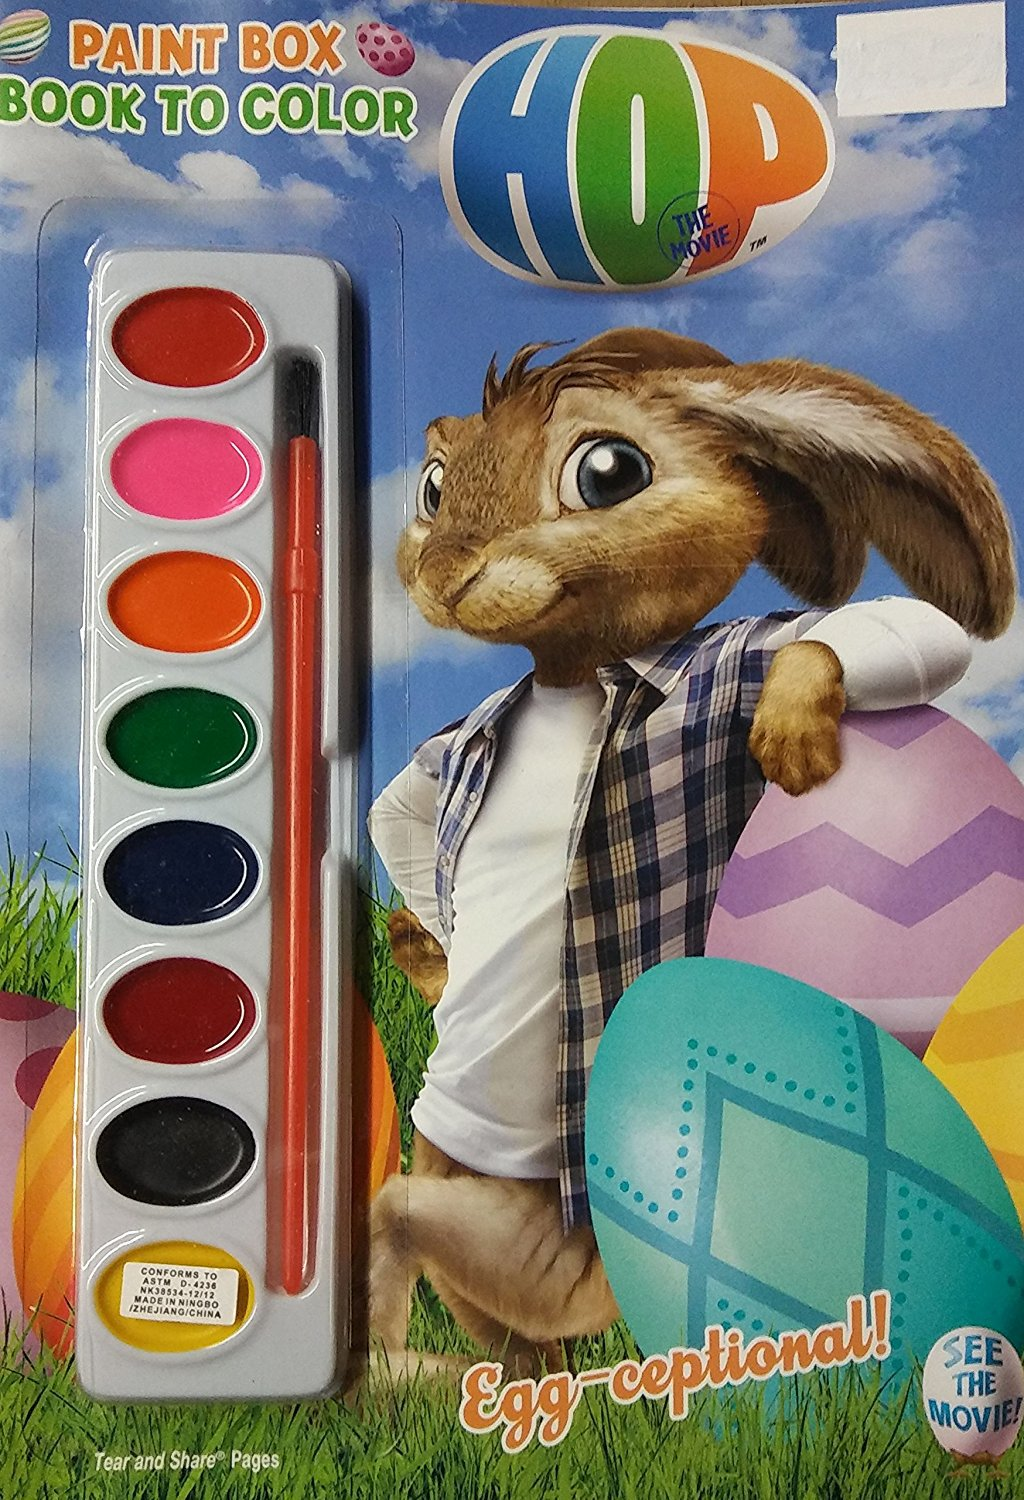 Paint Box Book to Color Hop - Egg-Ceptional - Coloring & Activity Book - v2